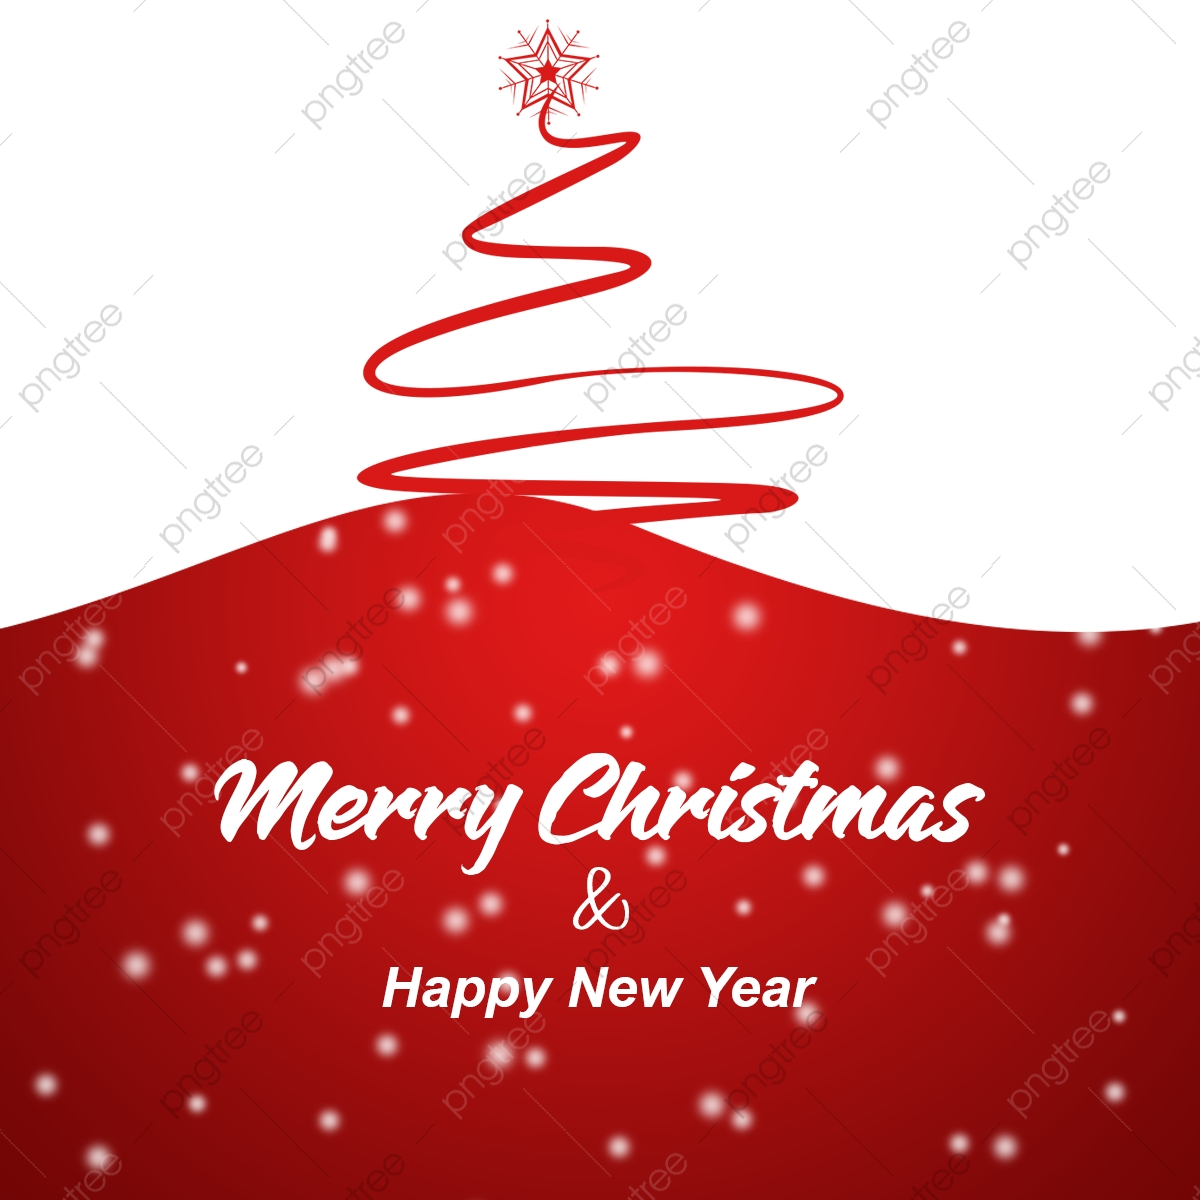 merry christmas and happy new year christmas background illustration png transparent clipart image and psd file for free download https pngtree com freepng merry christmas and happy new year 3728755 html